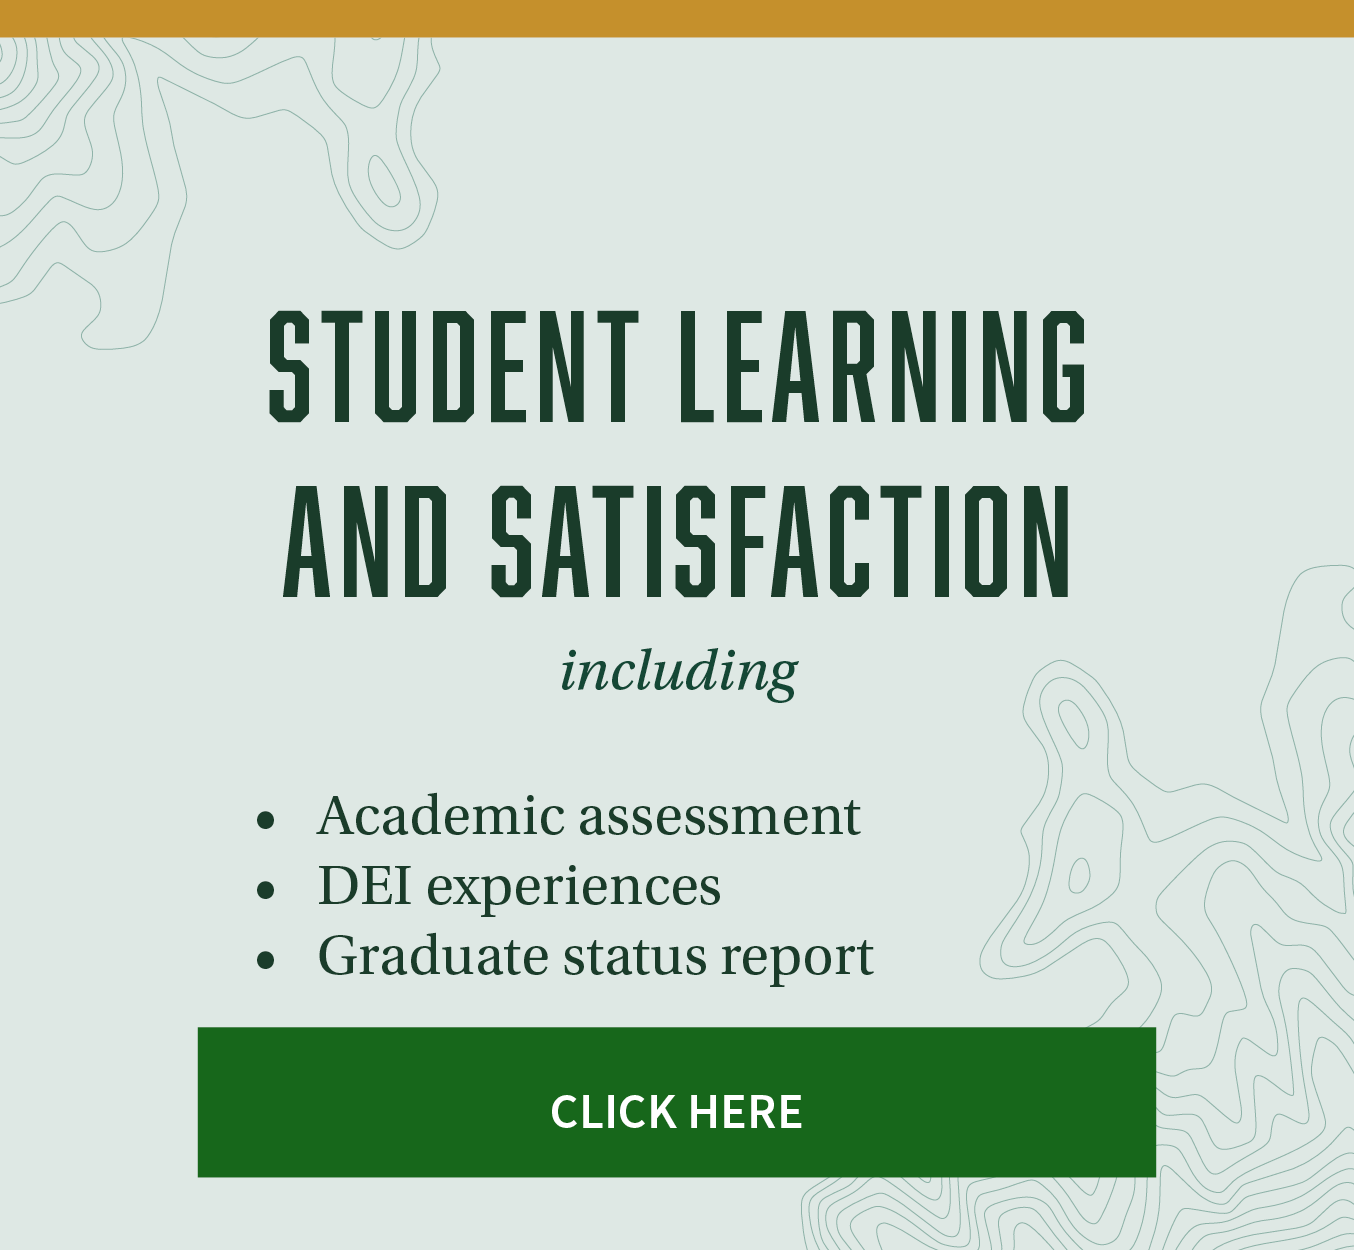 Student learning and satisfaction - including academic assessment, DEI experiences, graduate status report. Click here